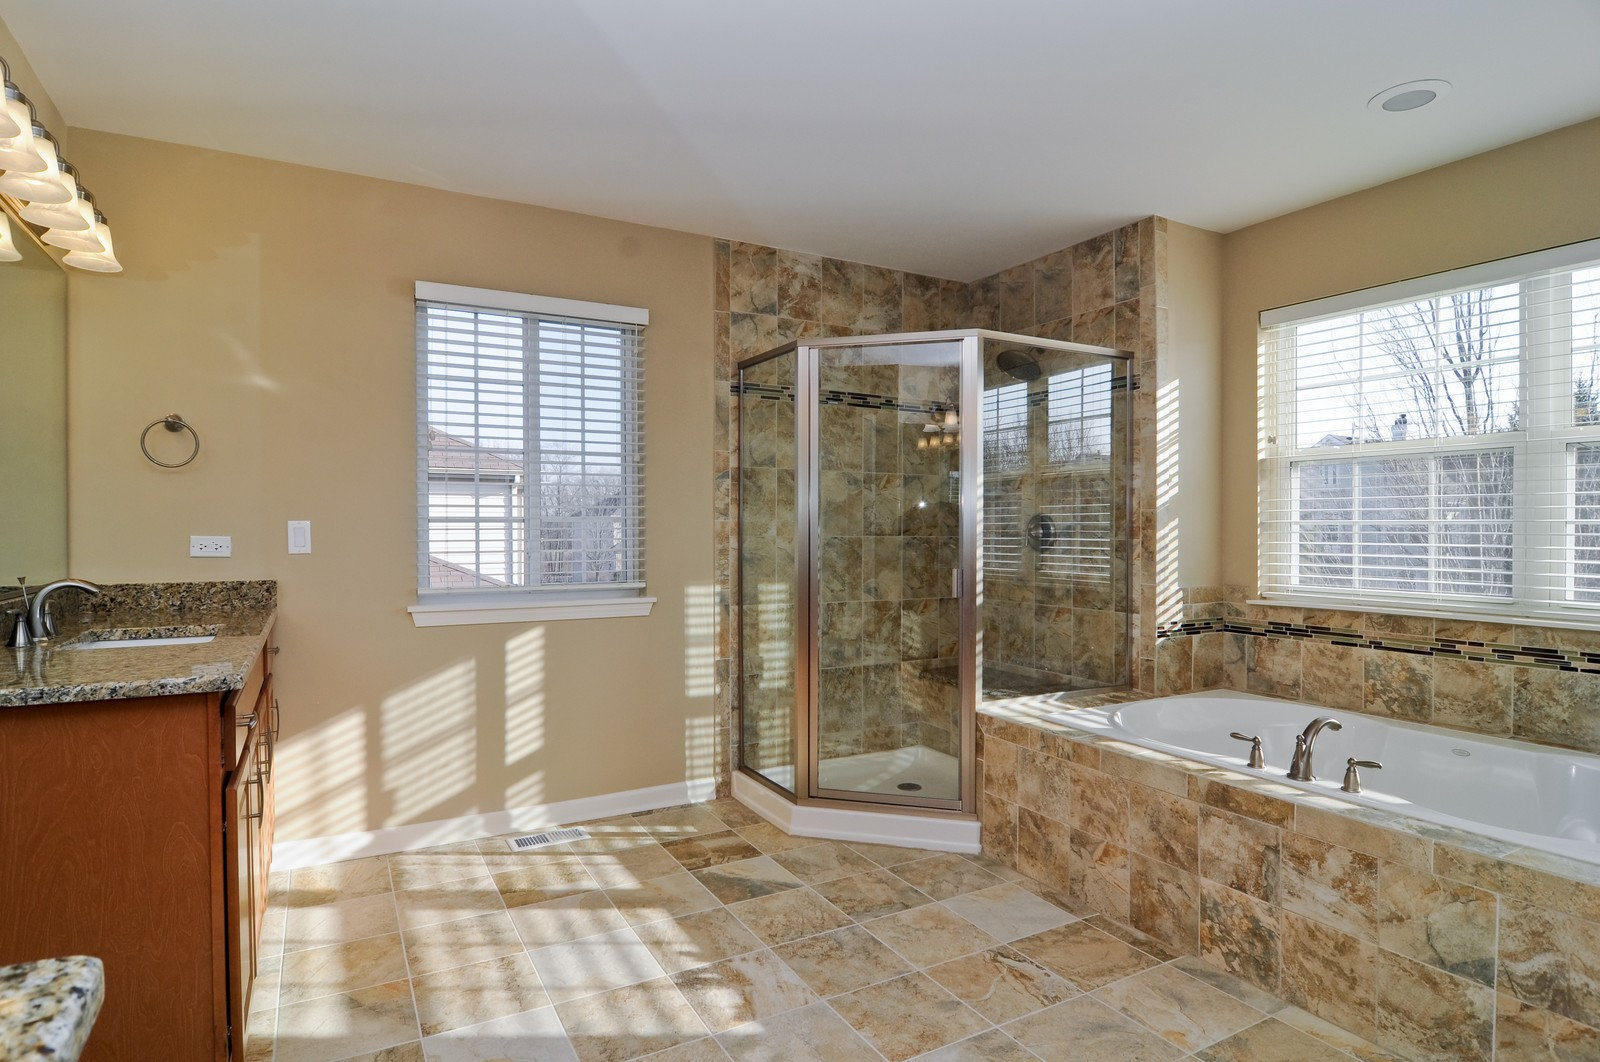 Real Estate Photography - 7394 Brentwood, Gurnee, IL, 60031 - Master Bathroom